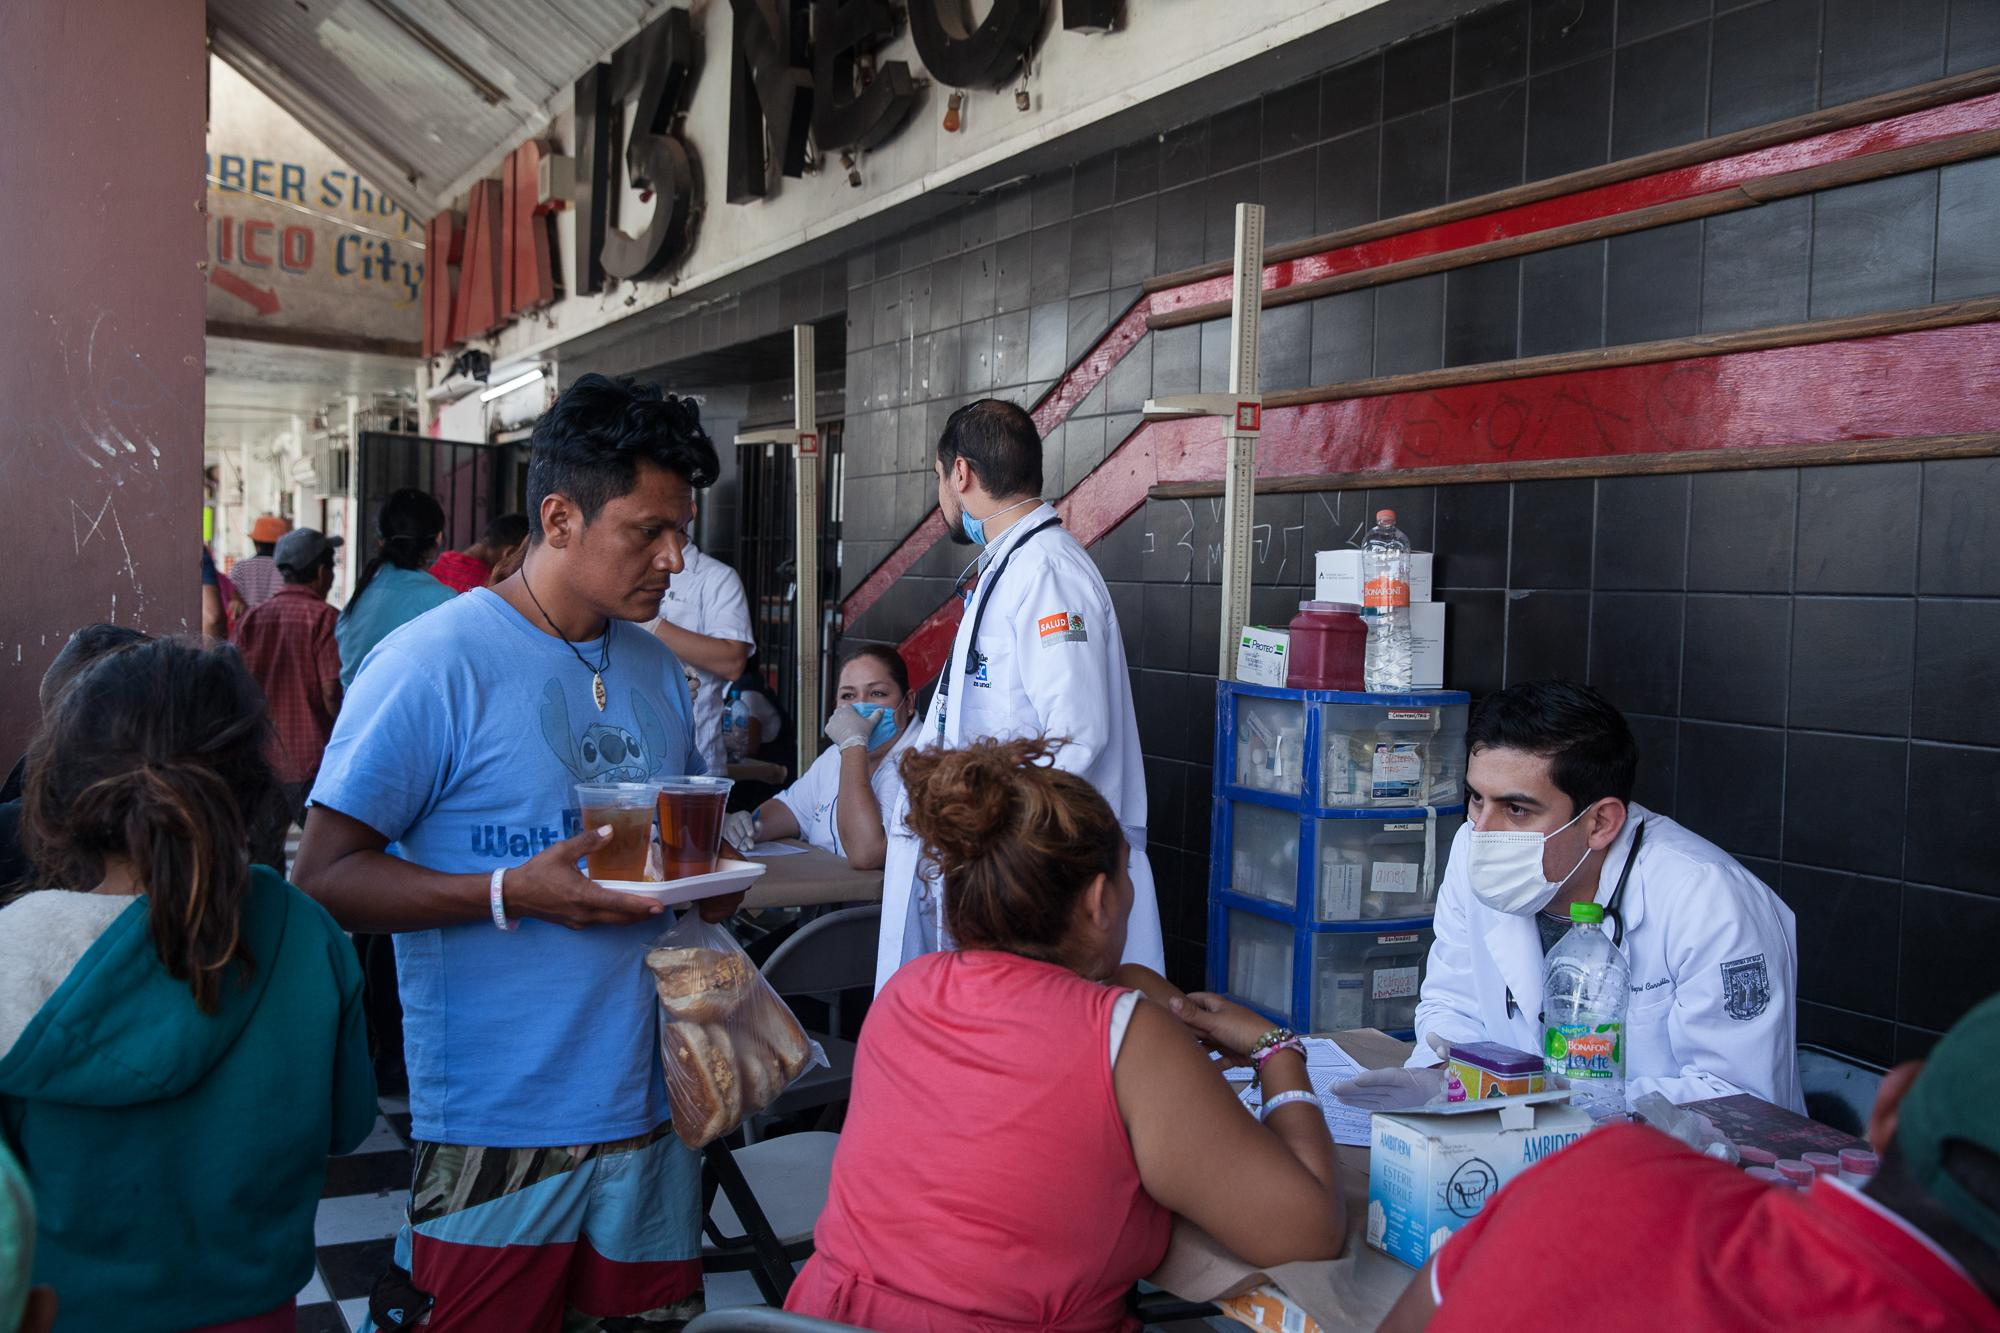 The caravan traveling through Mexico with migrants from Central America stopped in Mexicali, MX, for about two hours. Medical professionals were available to help in front of Hotel Del Migrante if anyone needed medical attention or had questions about their health on April 24, 2018.